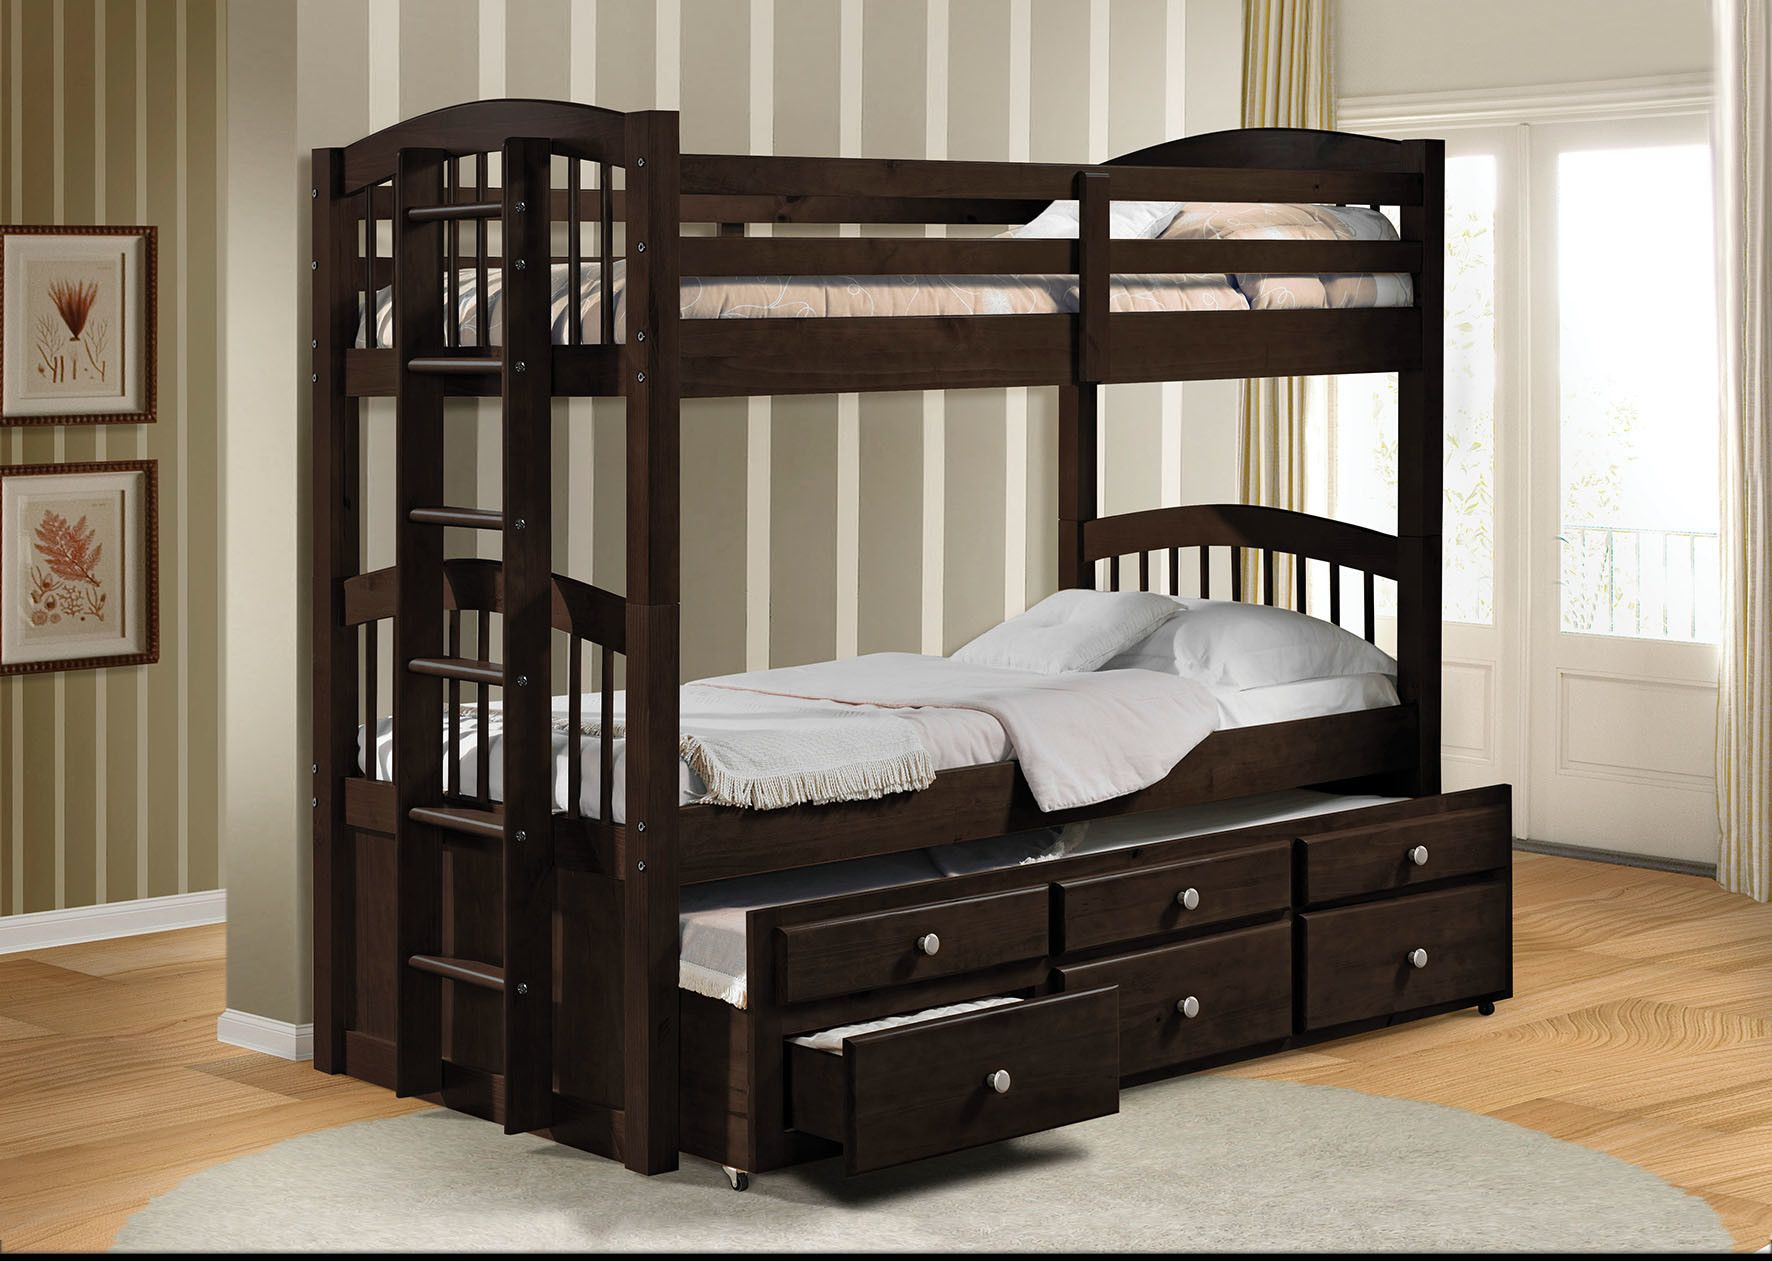 Micah Espresso Twin Bunk Bed with 3 Drawers (With images